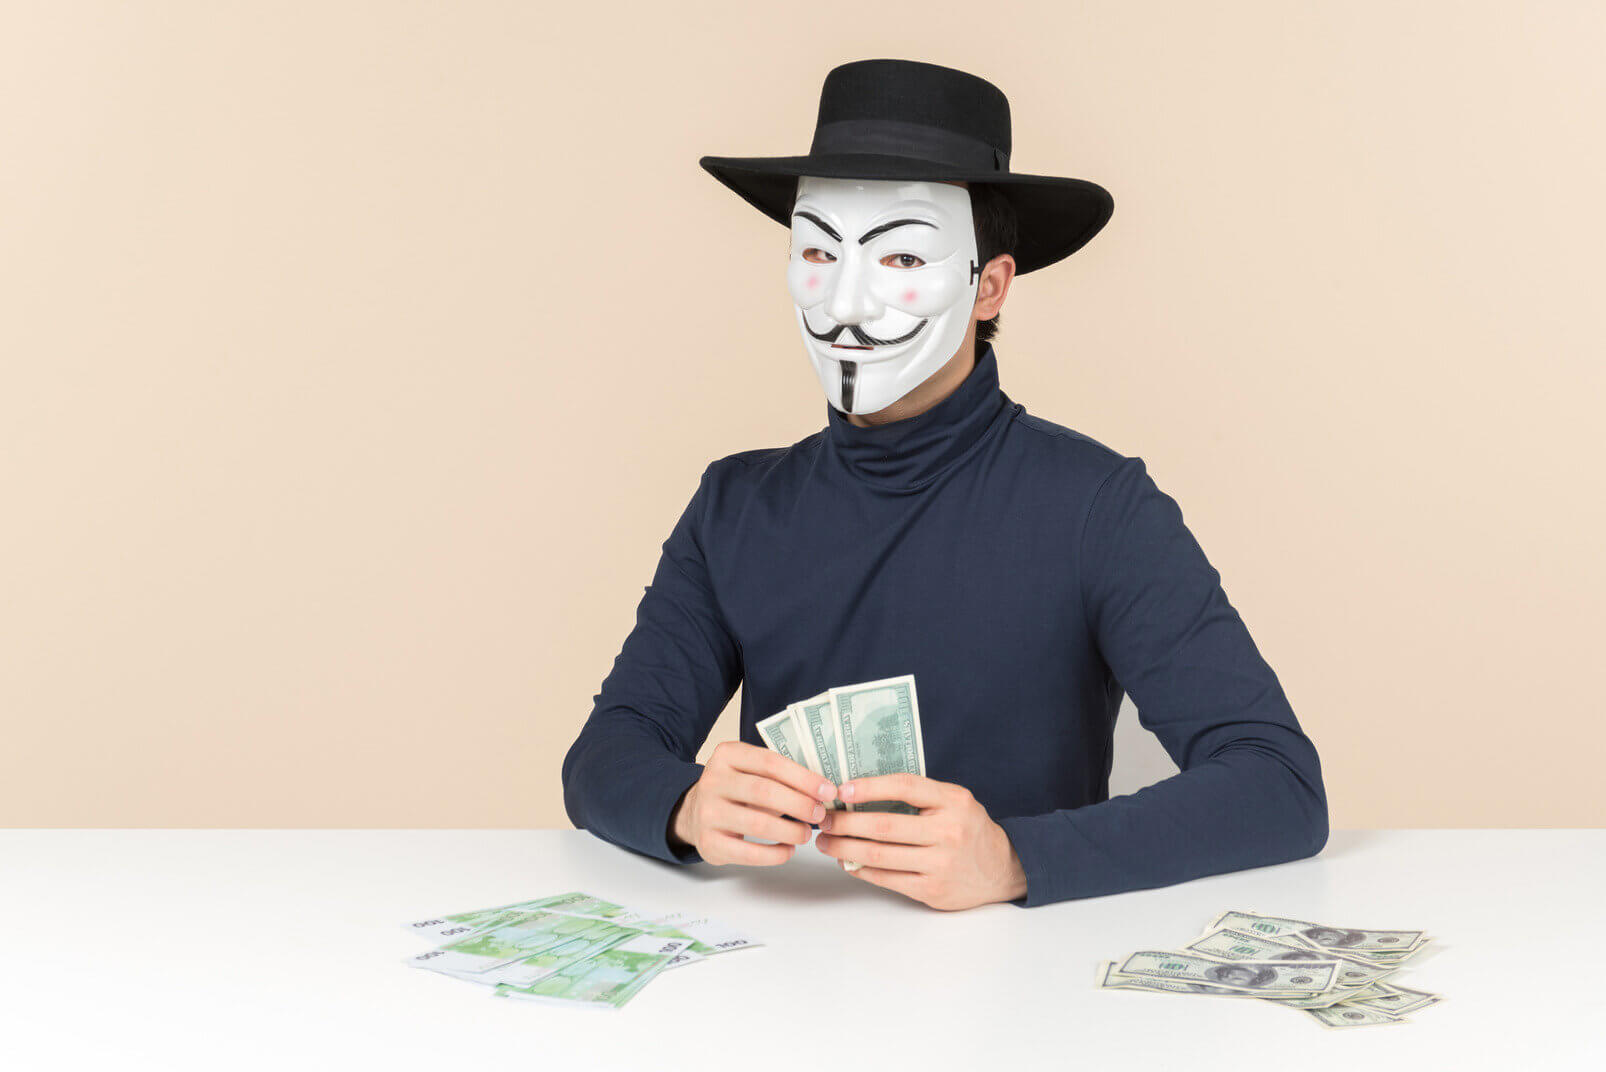 5 reasons why online students get scammed